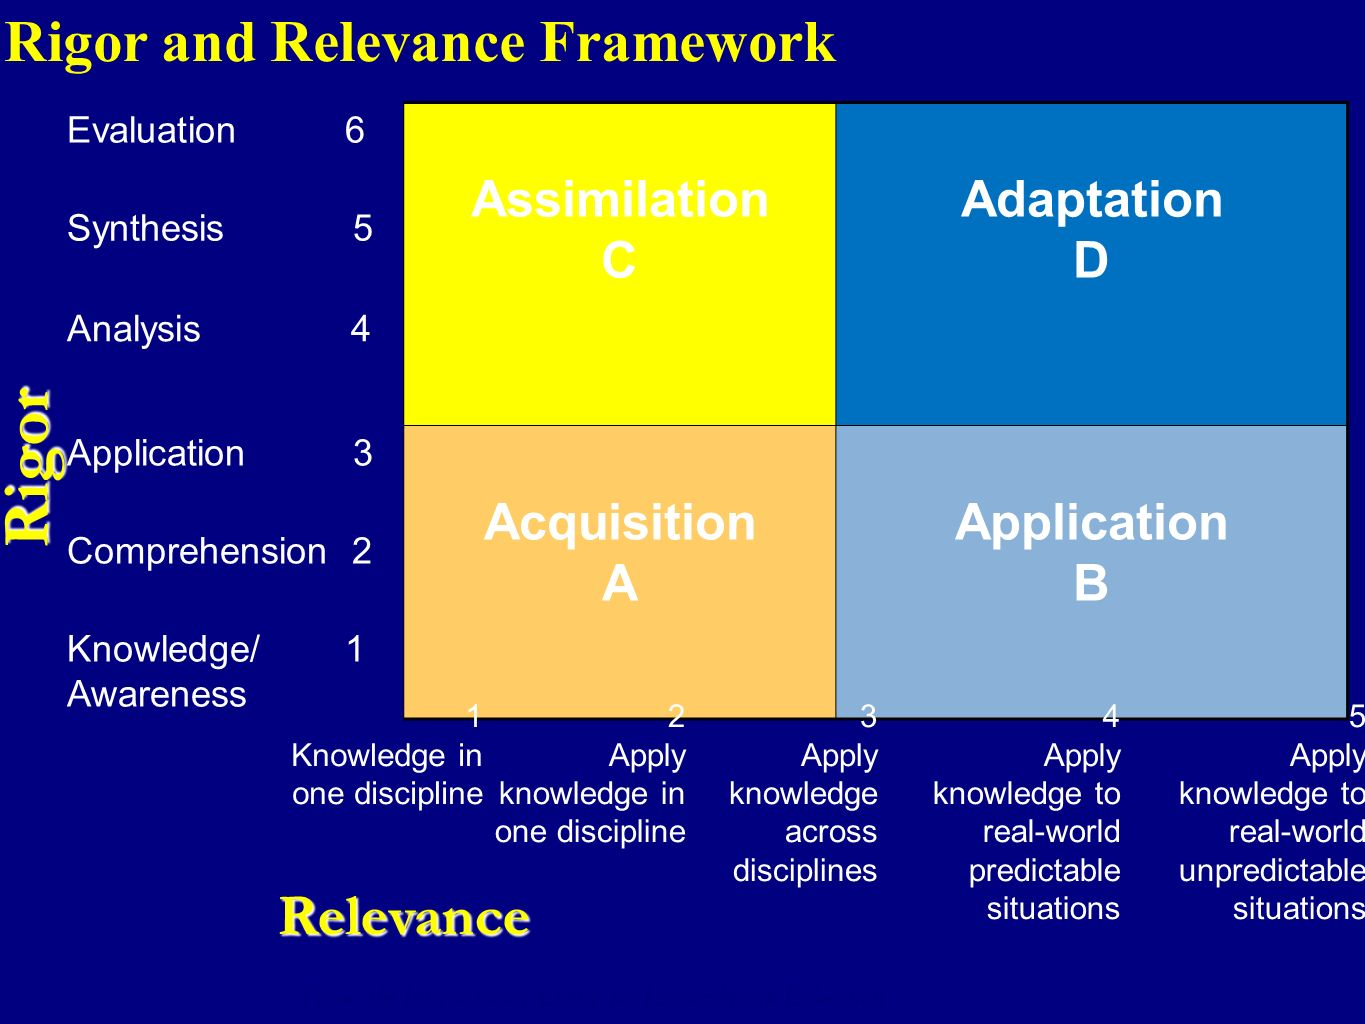 5 Evaluation 6 Assimilation C Adaptation D Synthesis 5 Analysis 4 Application 3 Acquisition A Application B Comprehension 2 Knowledge/ 1 Awareness Rig